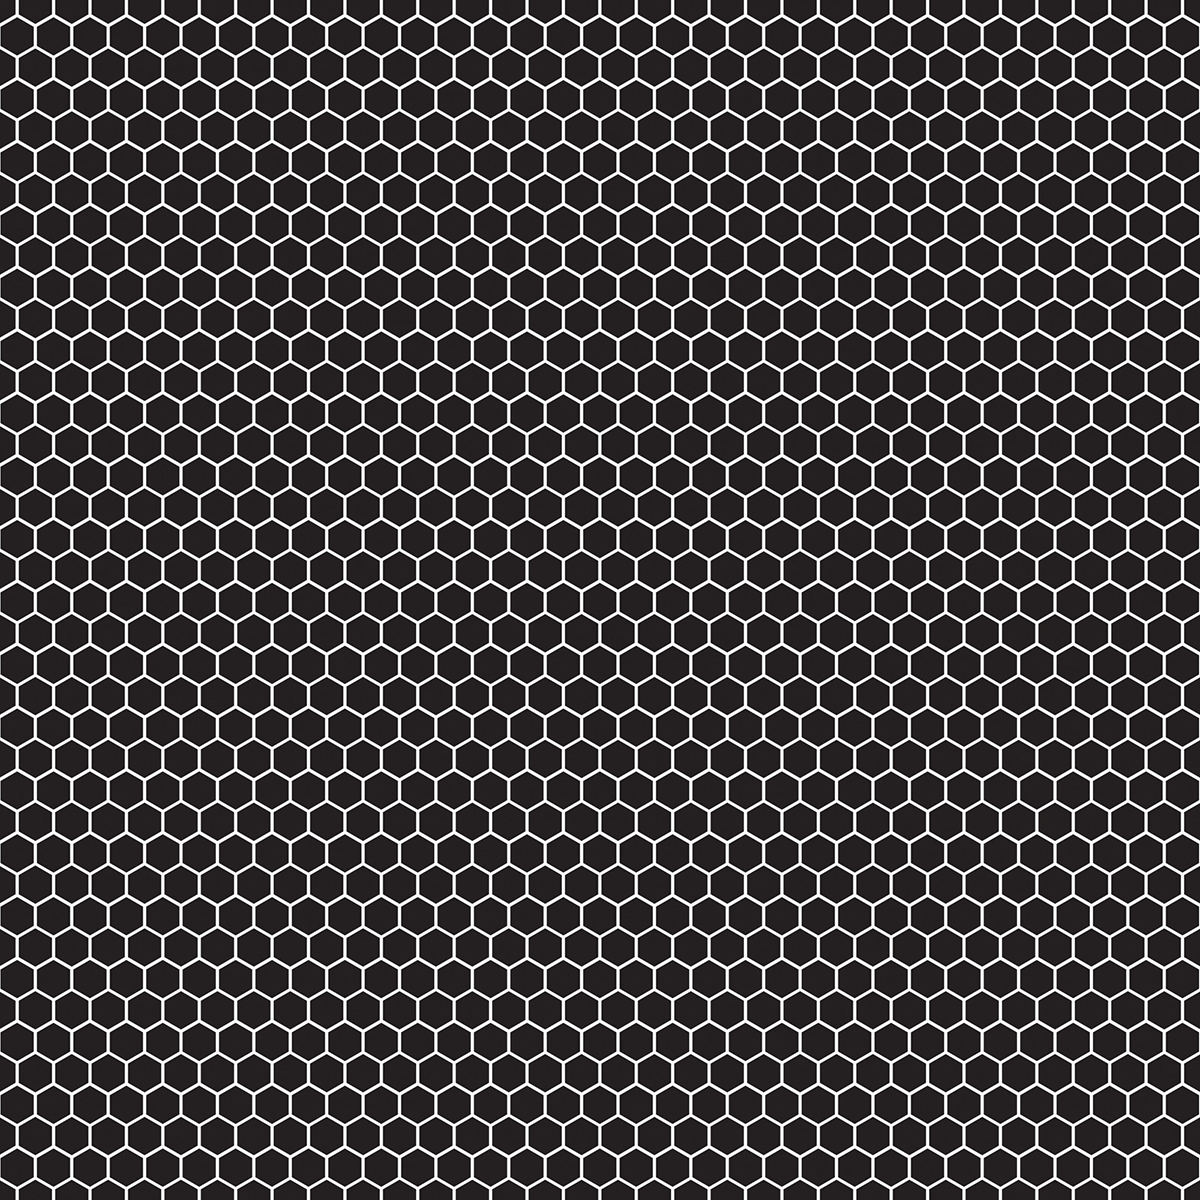 """Diy Shop 4 Specialty Cardstock 12""""X12""""-White On Black - image 1 of 1"""